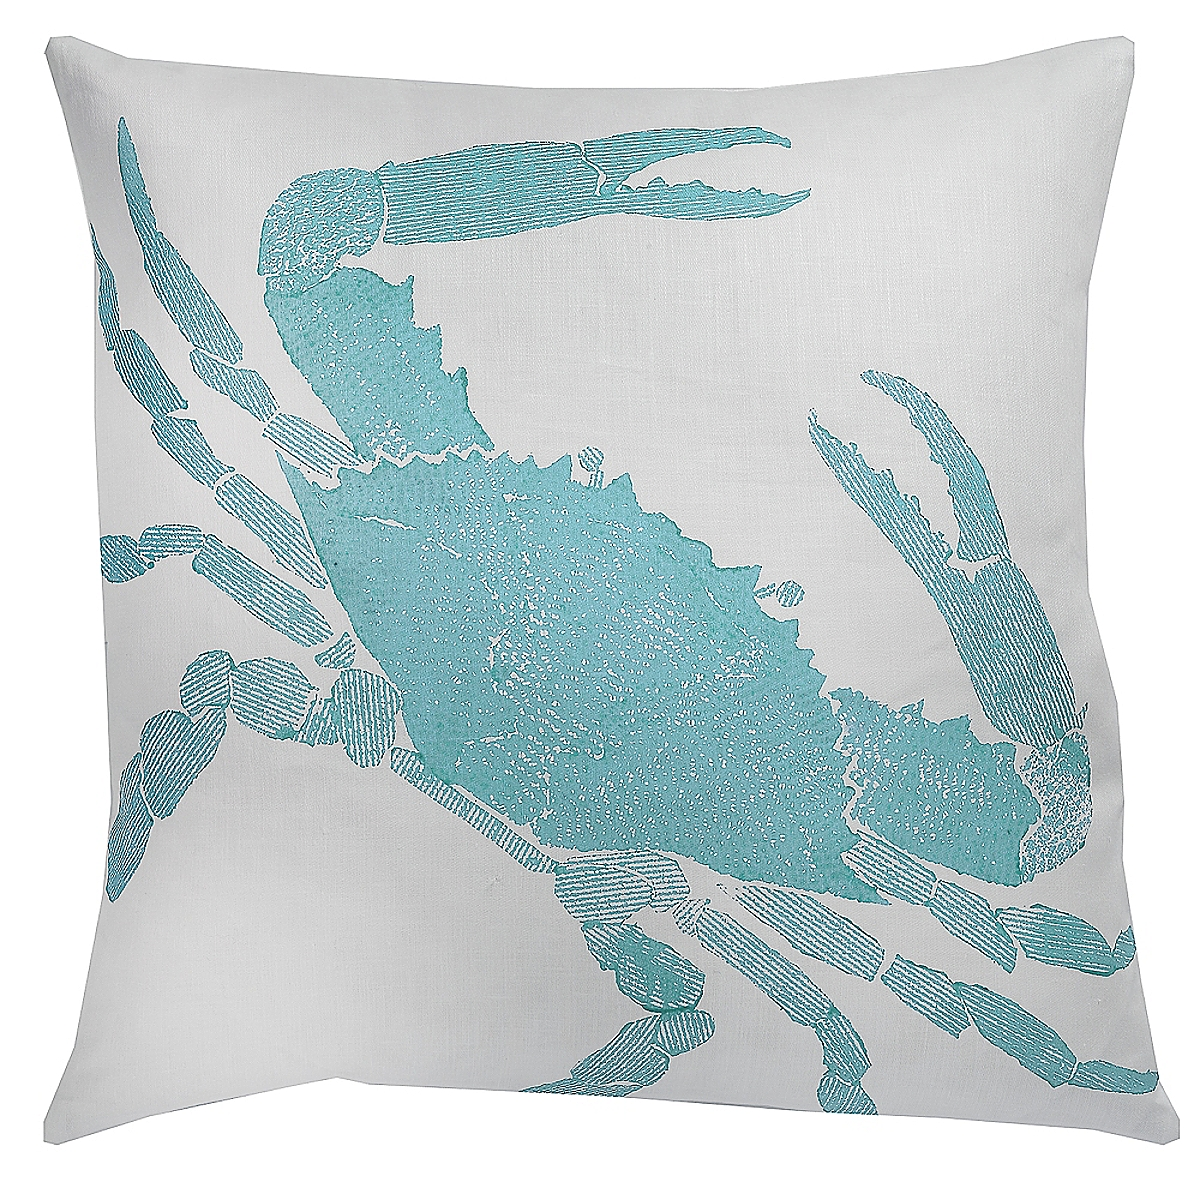 "20"" x 20"" - Crab Pillow: Wave on White Linen"